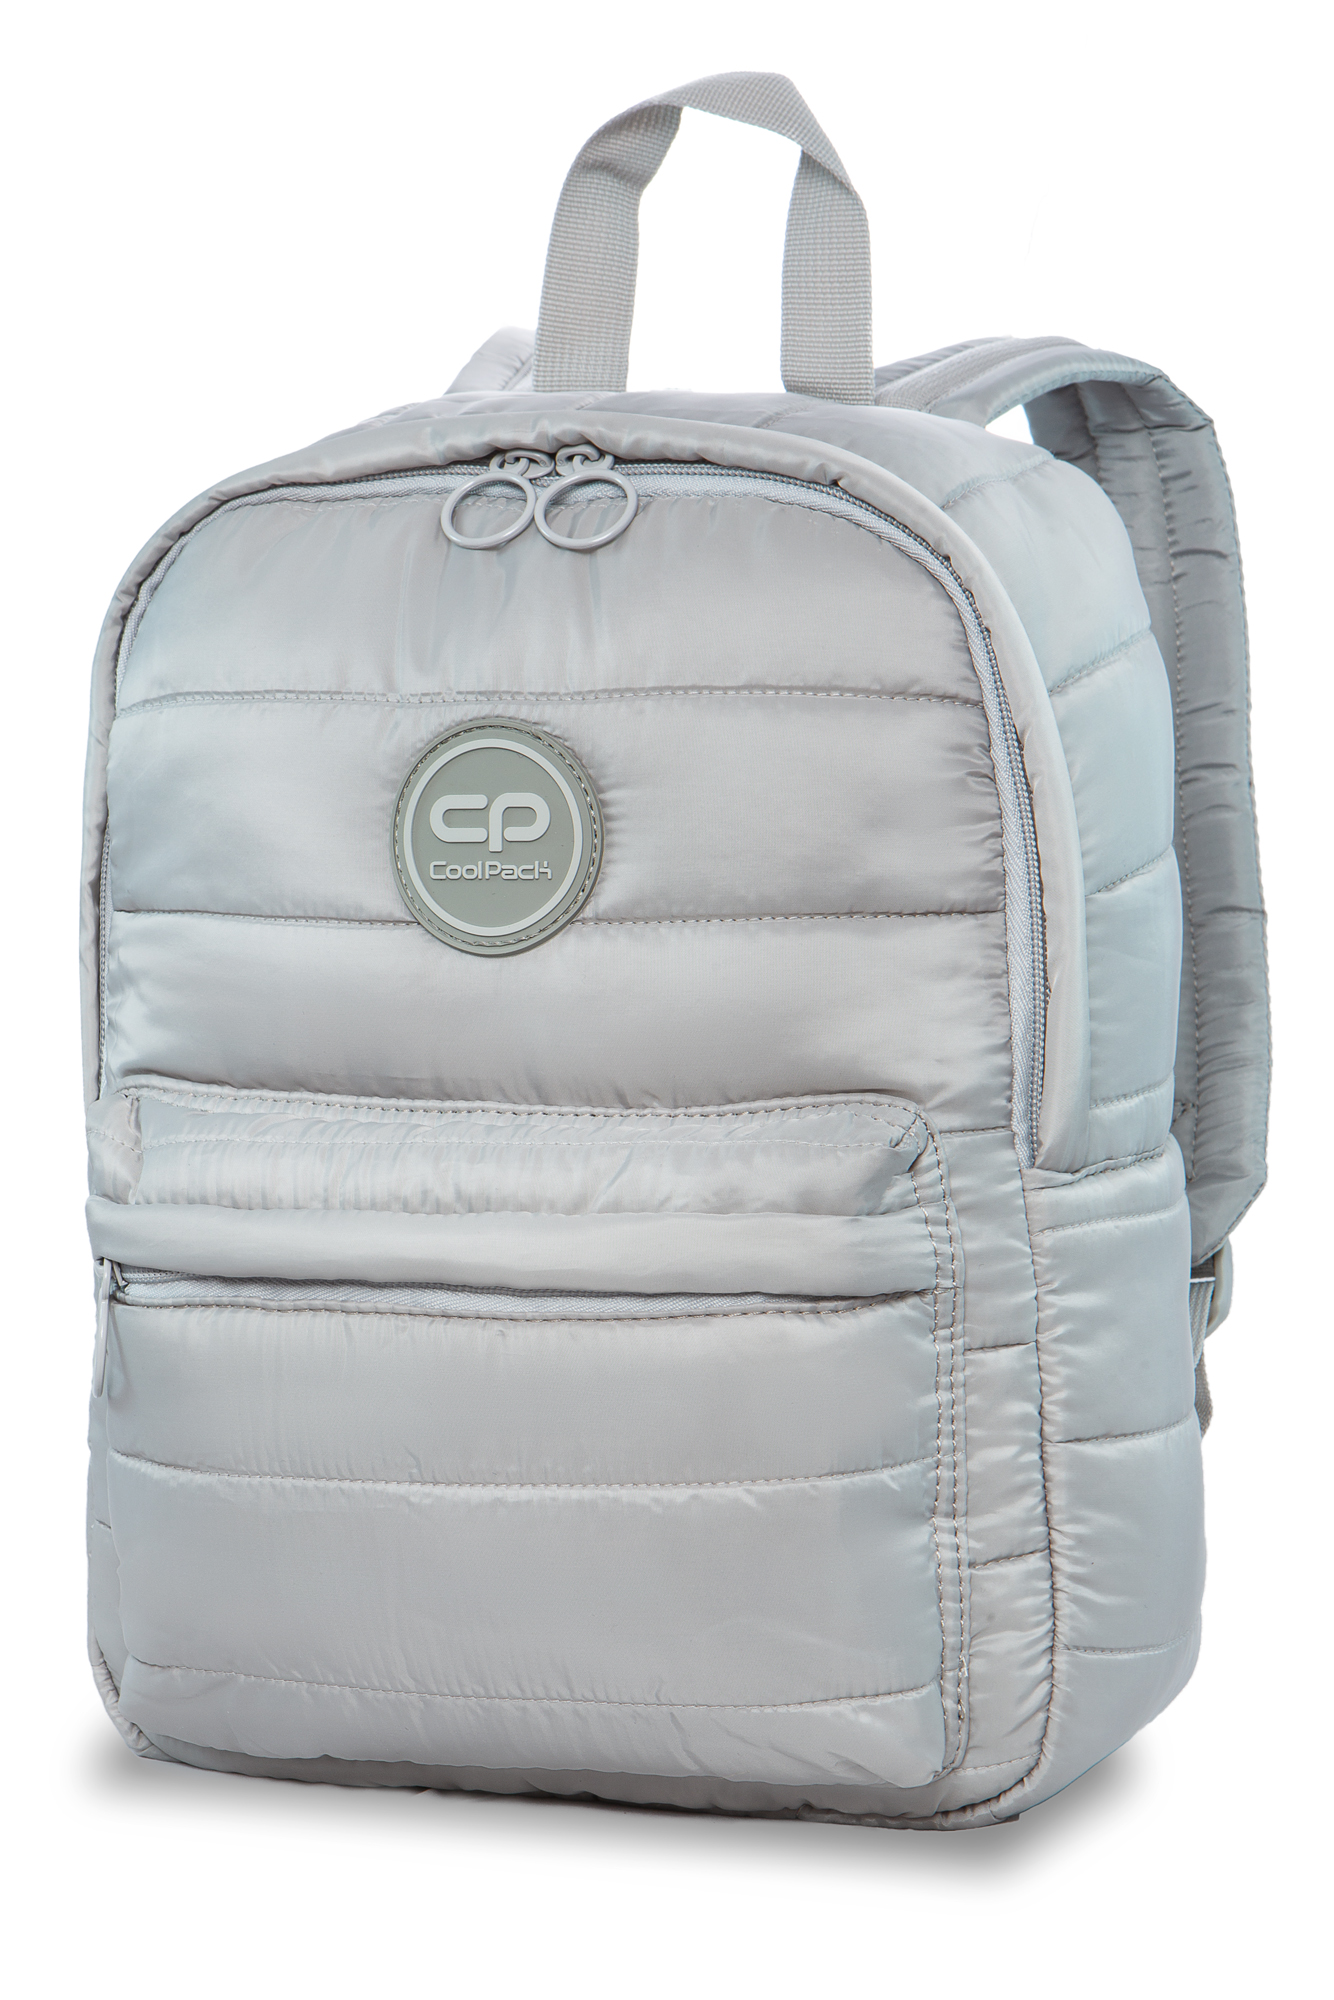 Coolpack - abby - youth backpack - gray mist